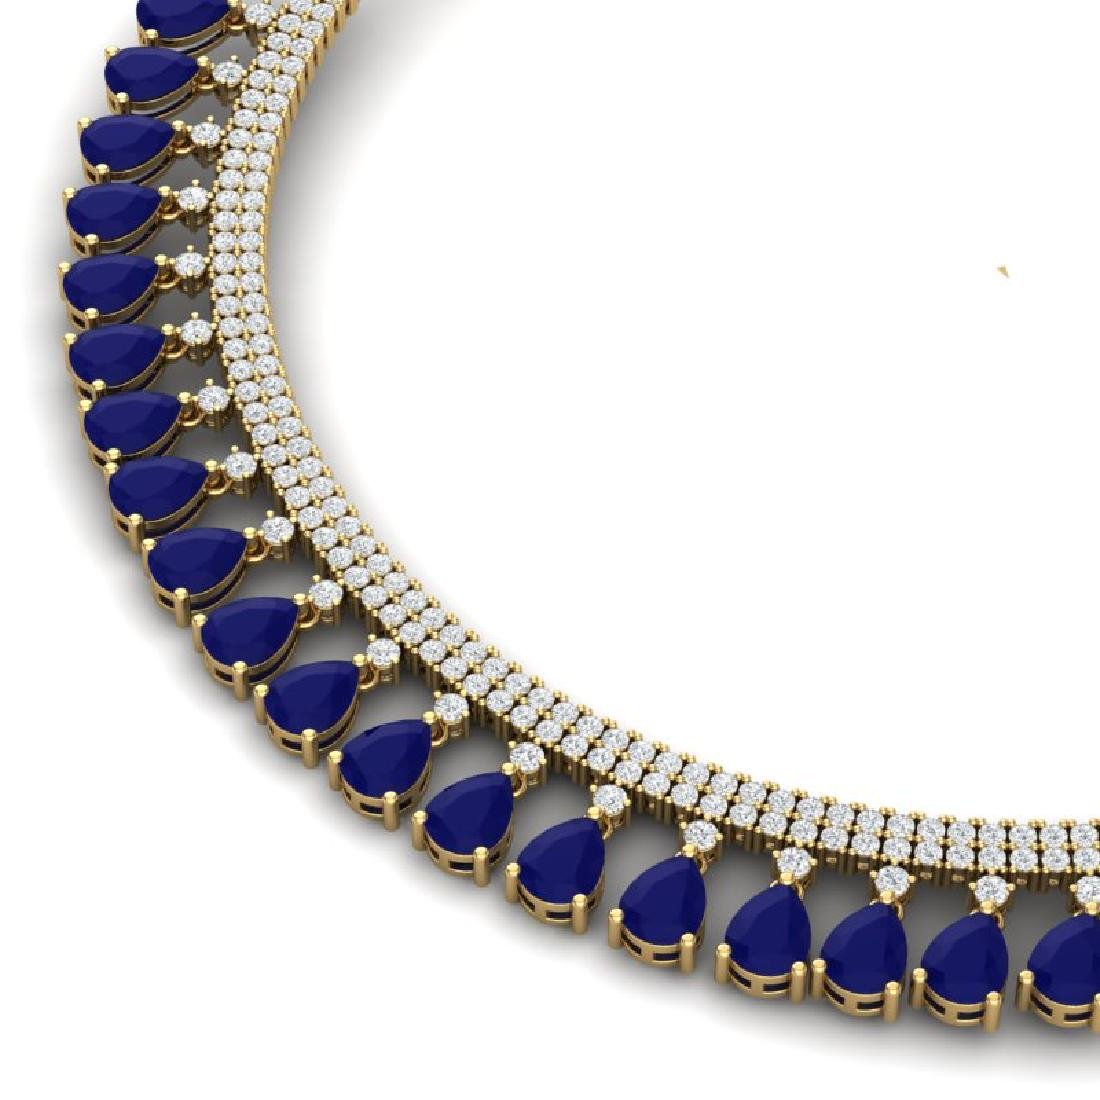 51.75 CTW Royalty Sapphire & VS Diamond Necklace 18K - 2